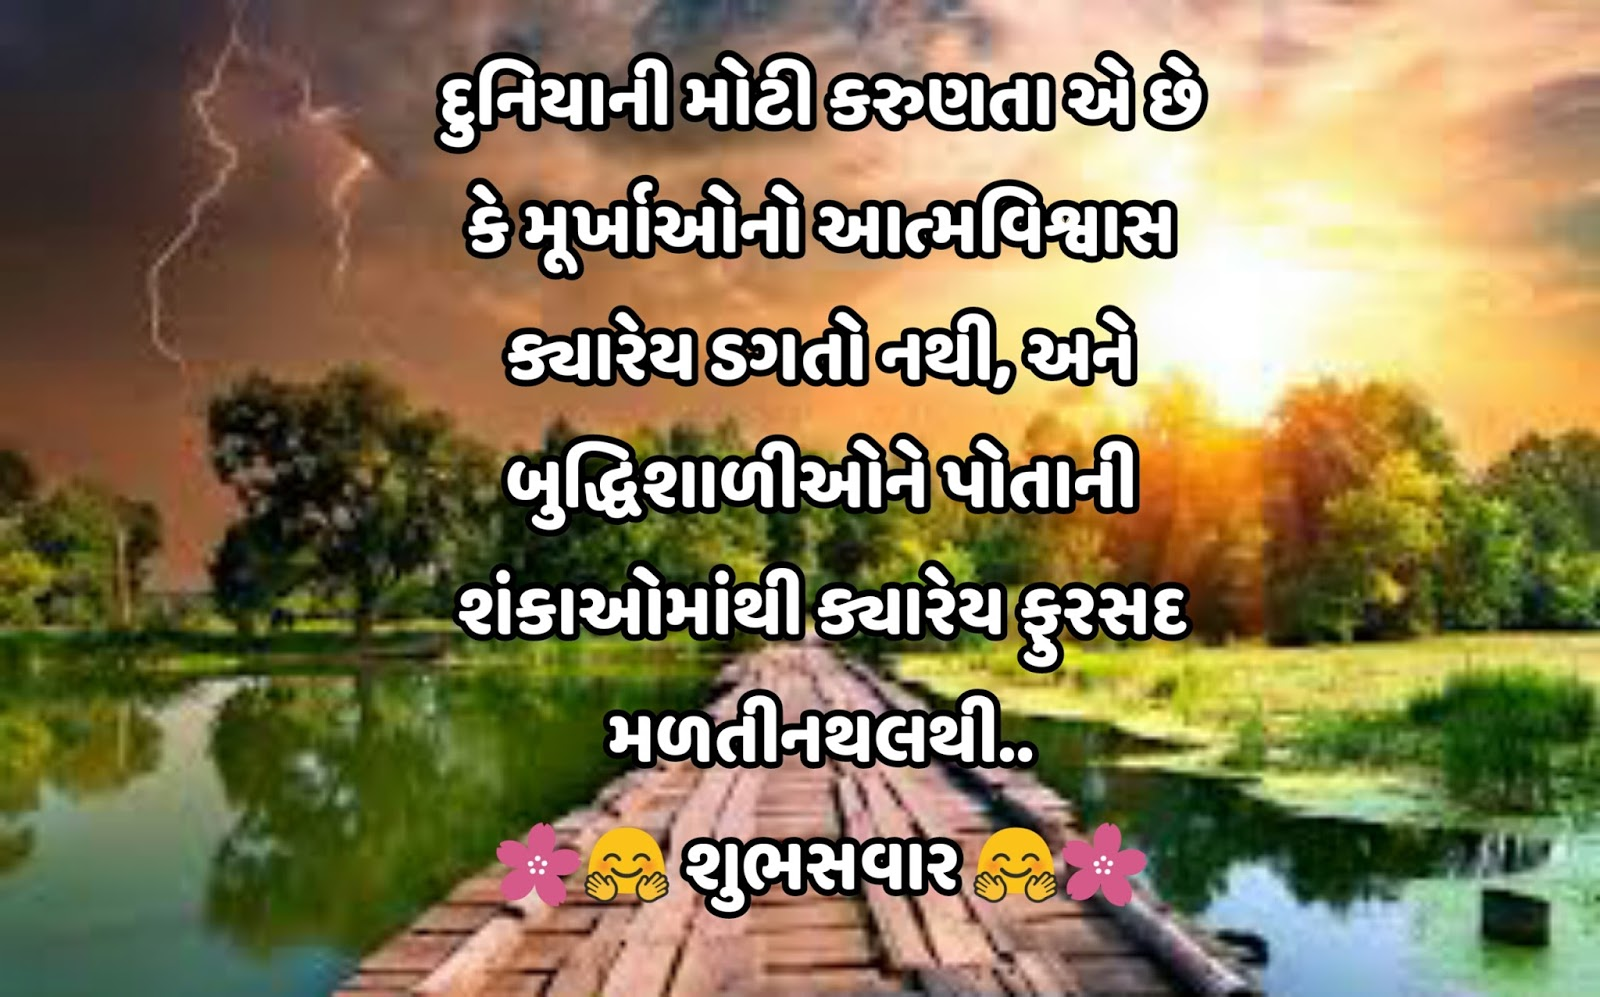 Gujarati good morning shayari